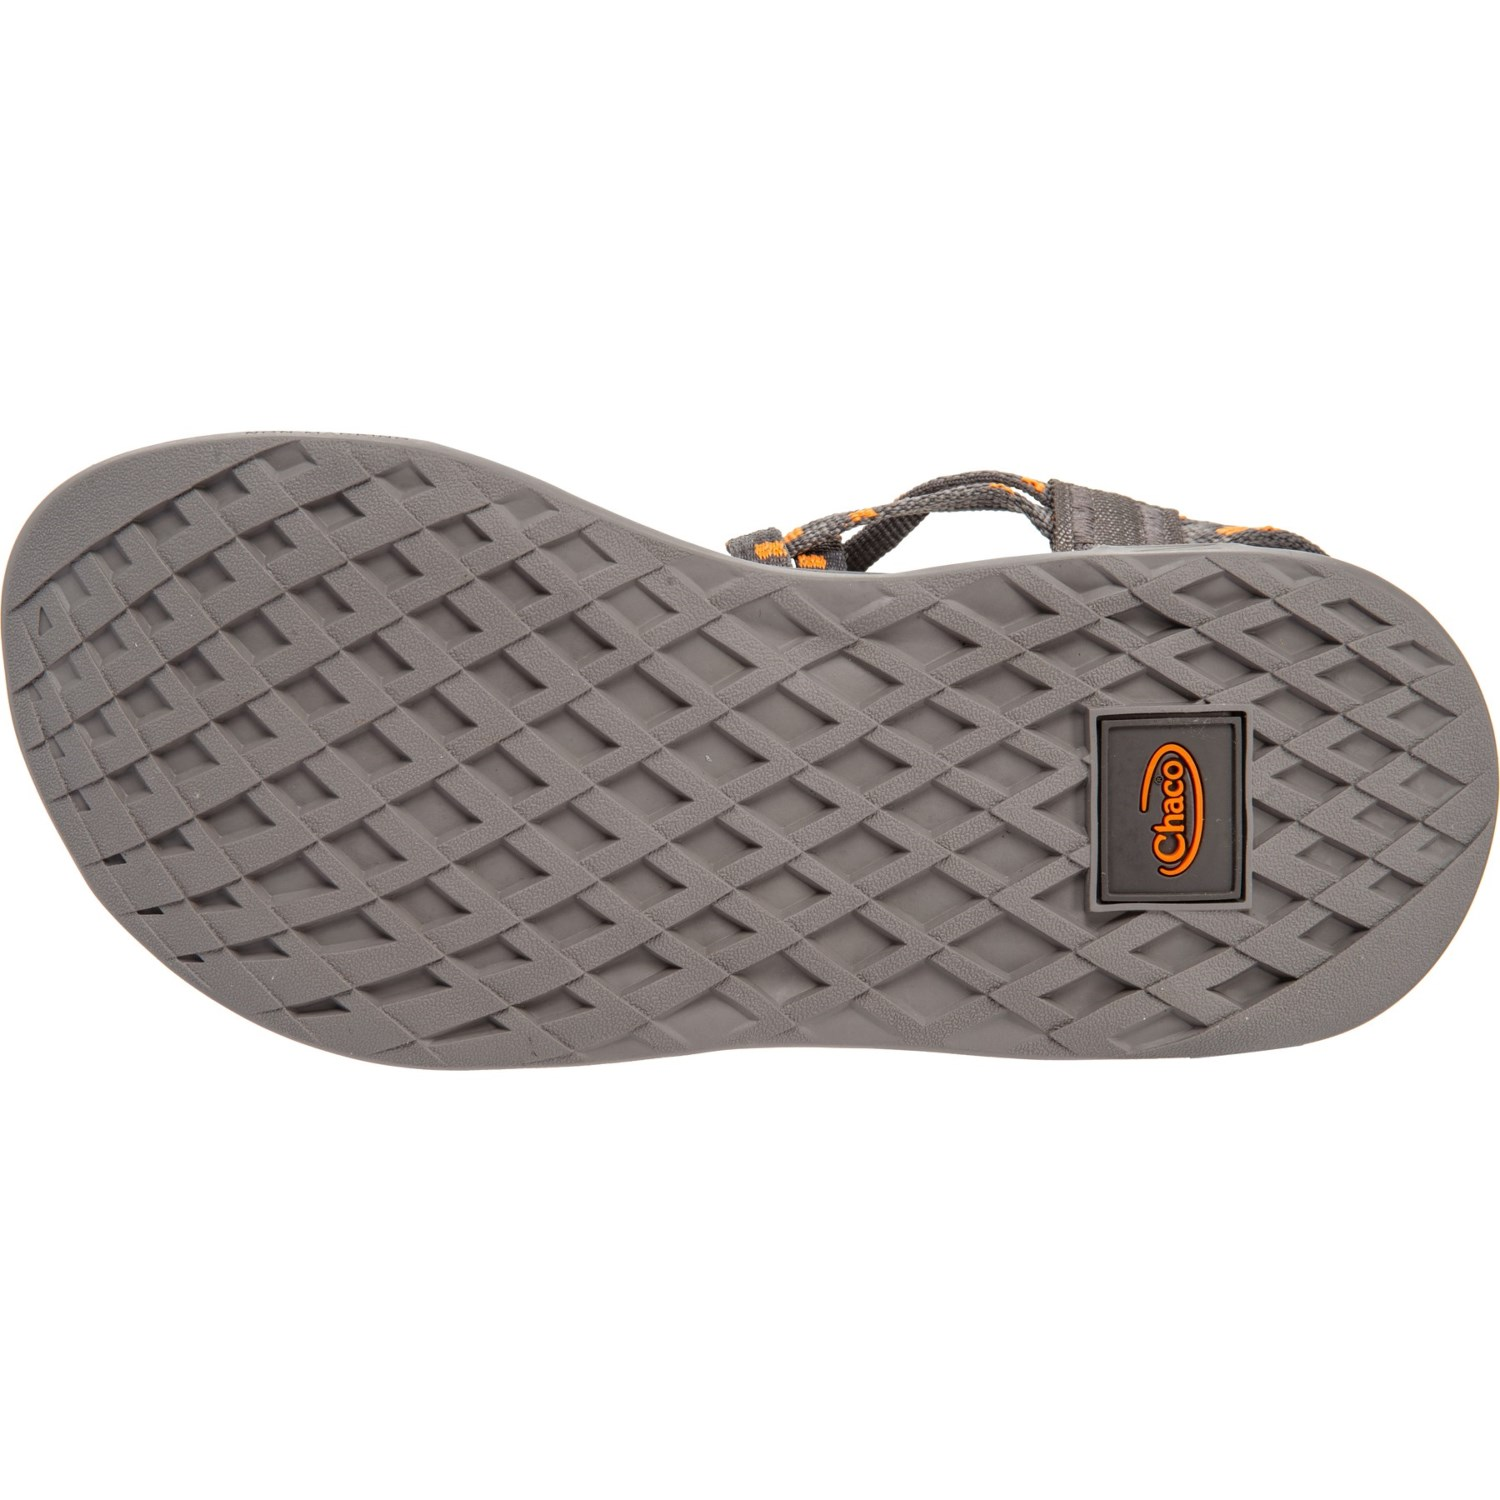 79a627a2cf98 Chaco Z Eddy X1 Sport Sandals (For Women) - Save 44%